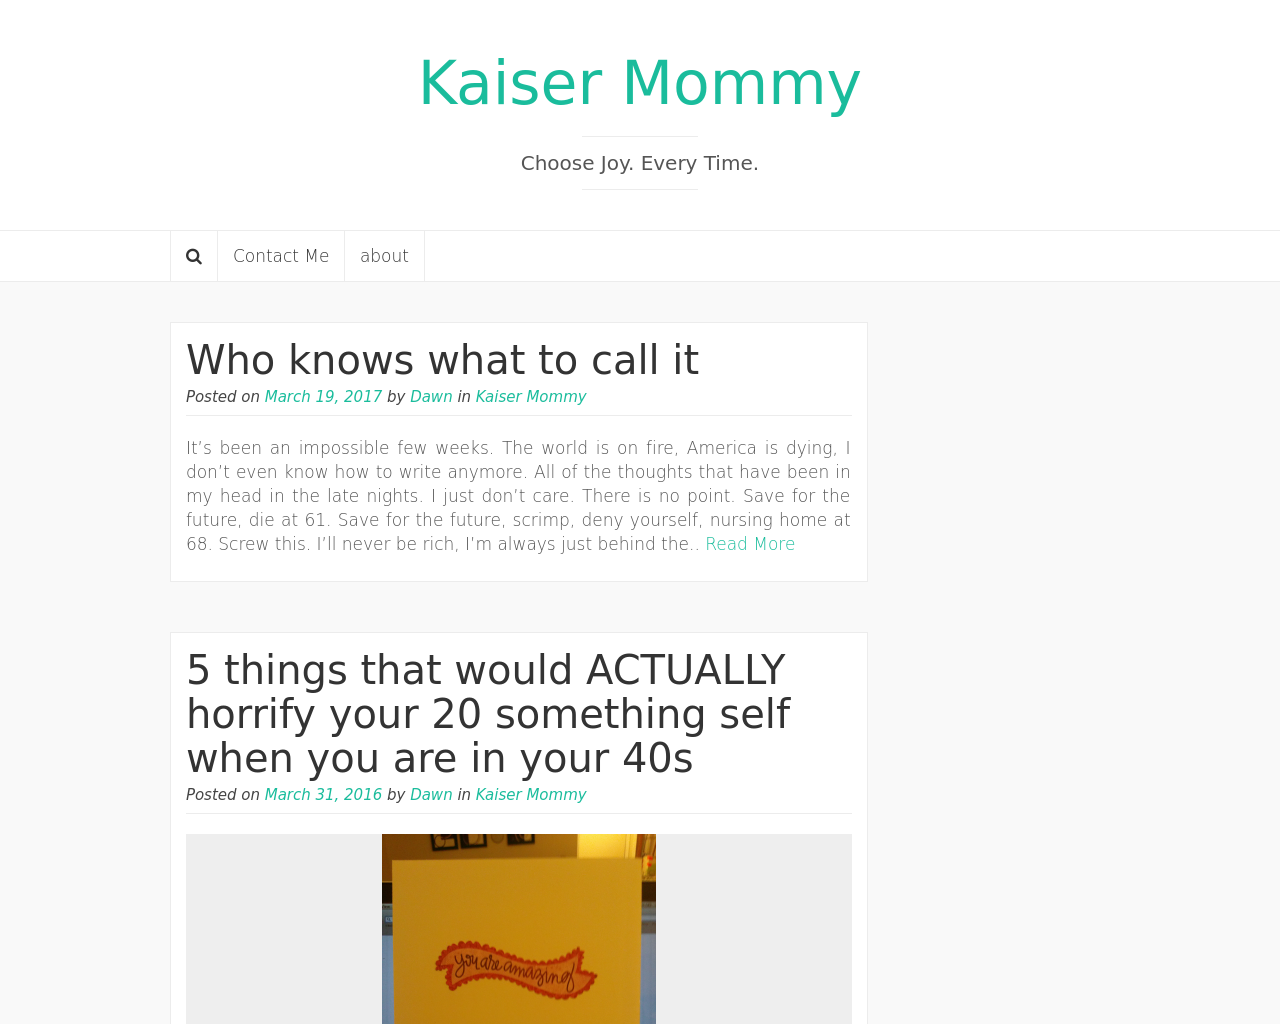 Kaiser-Mommy-Advertising-Reviews-Pricing